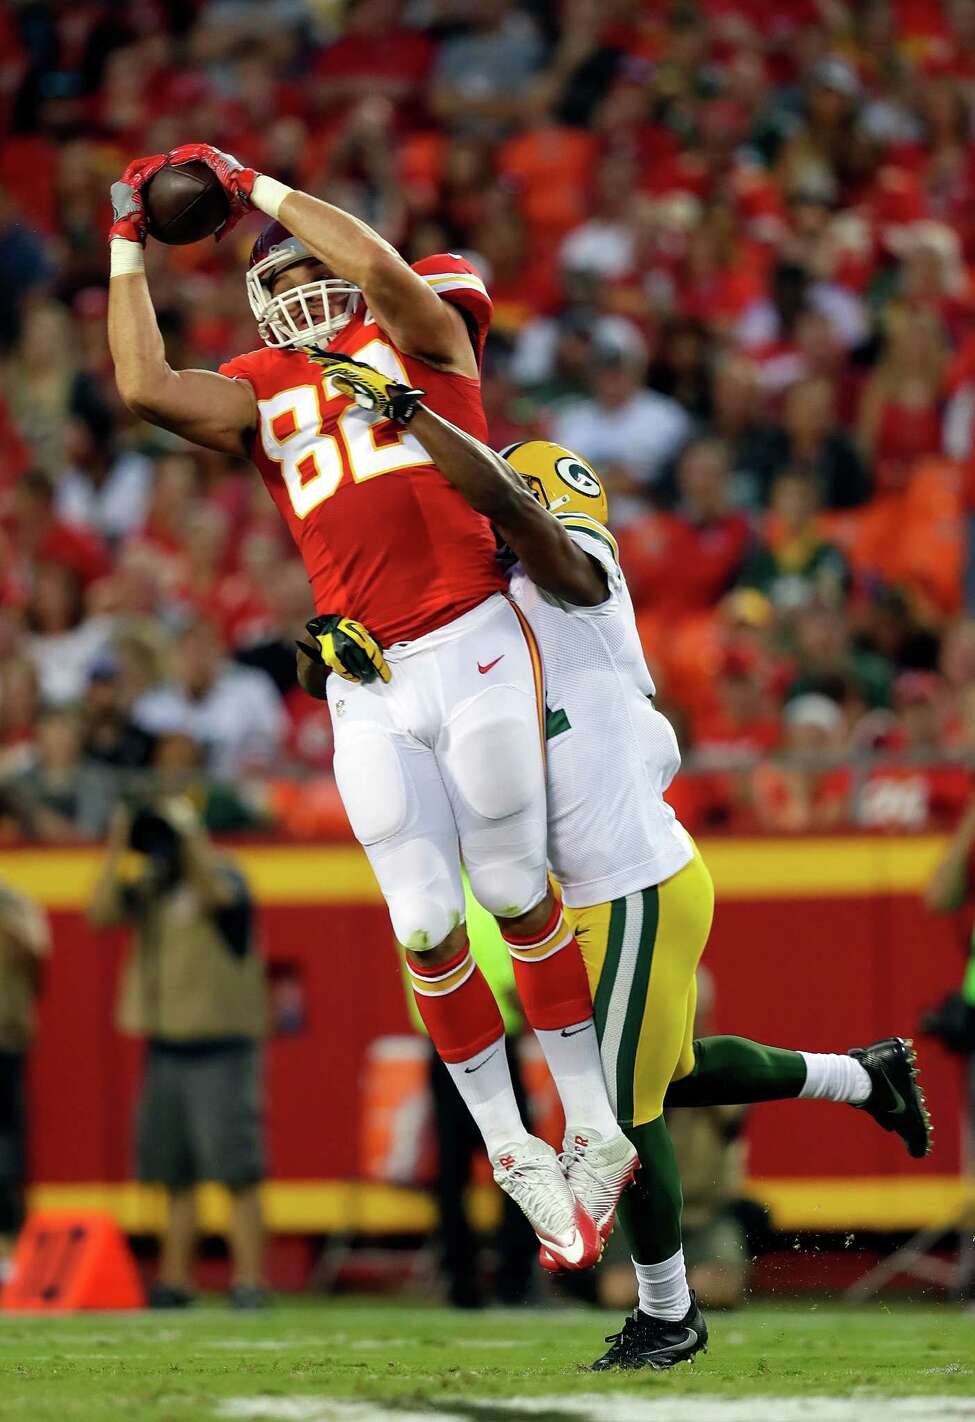 KANSAS CITY, MO - SEPTEMBER 01: Brian Parker #82 of the Kansas City Chiefs catches a pass a Robertson Daniel #31 of the Green Bay Packers defends during the preseason game at Arrowhead Stadium on September 1, 2016 in Kansas City, Missouri. (Photo by Jamie Squire/Getty Images) ORG XMIT: 657833655